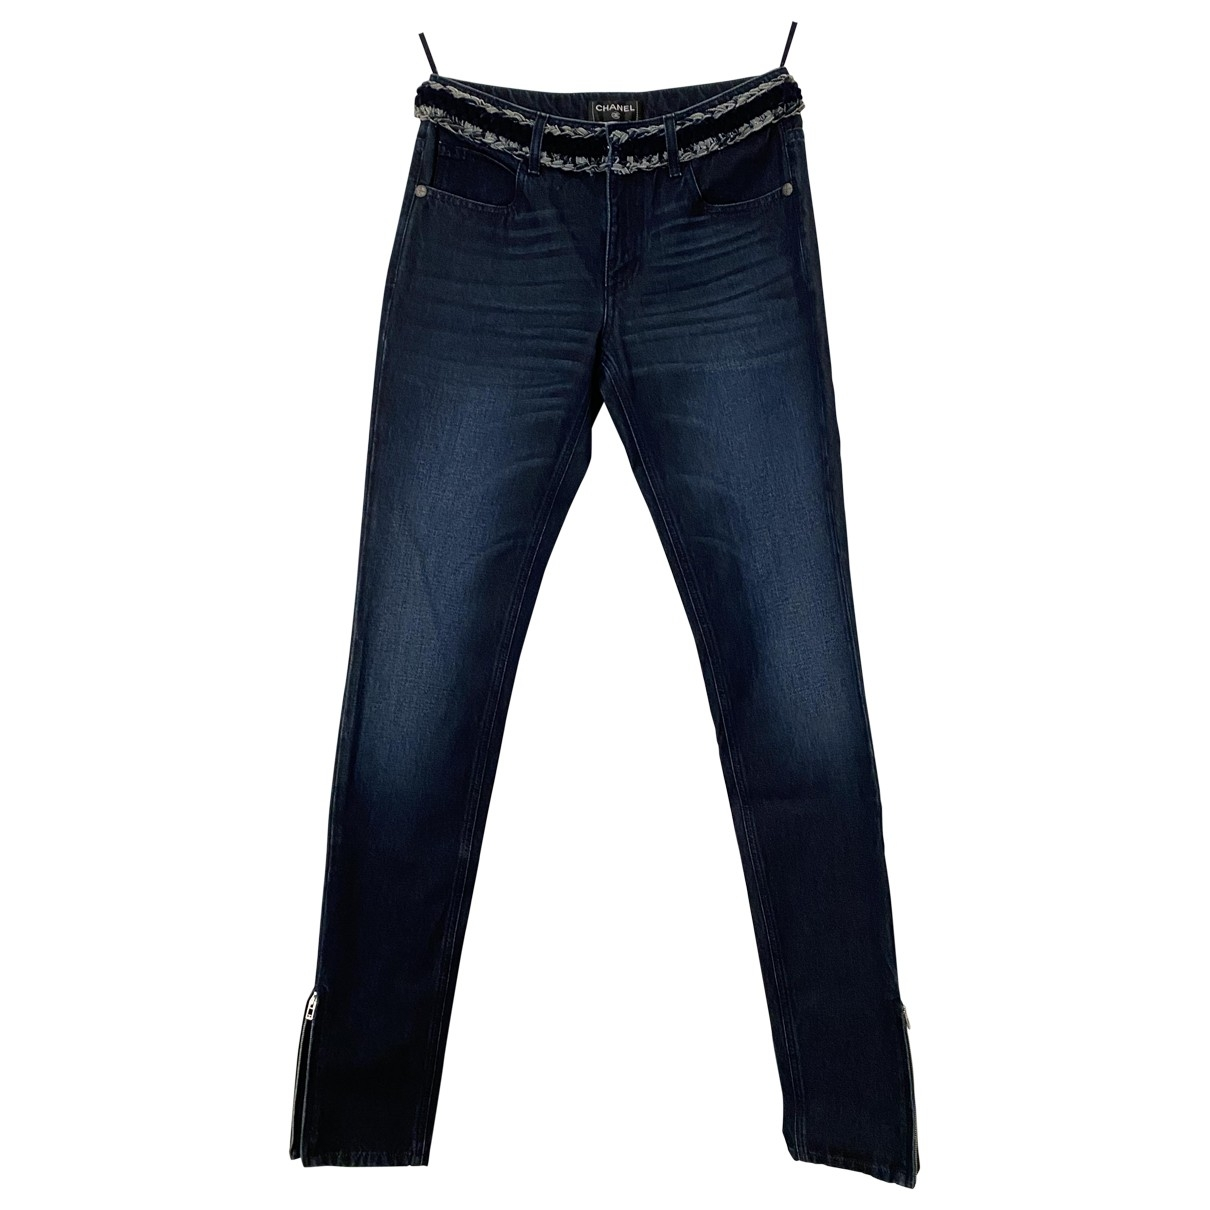 Chanel \N Blue Cotton Jeans for Women 36 FR